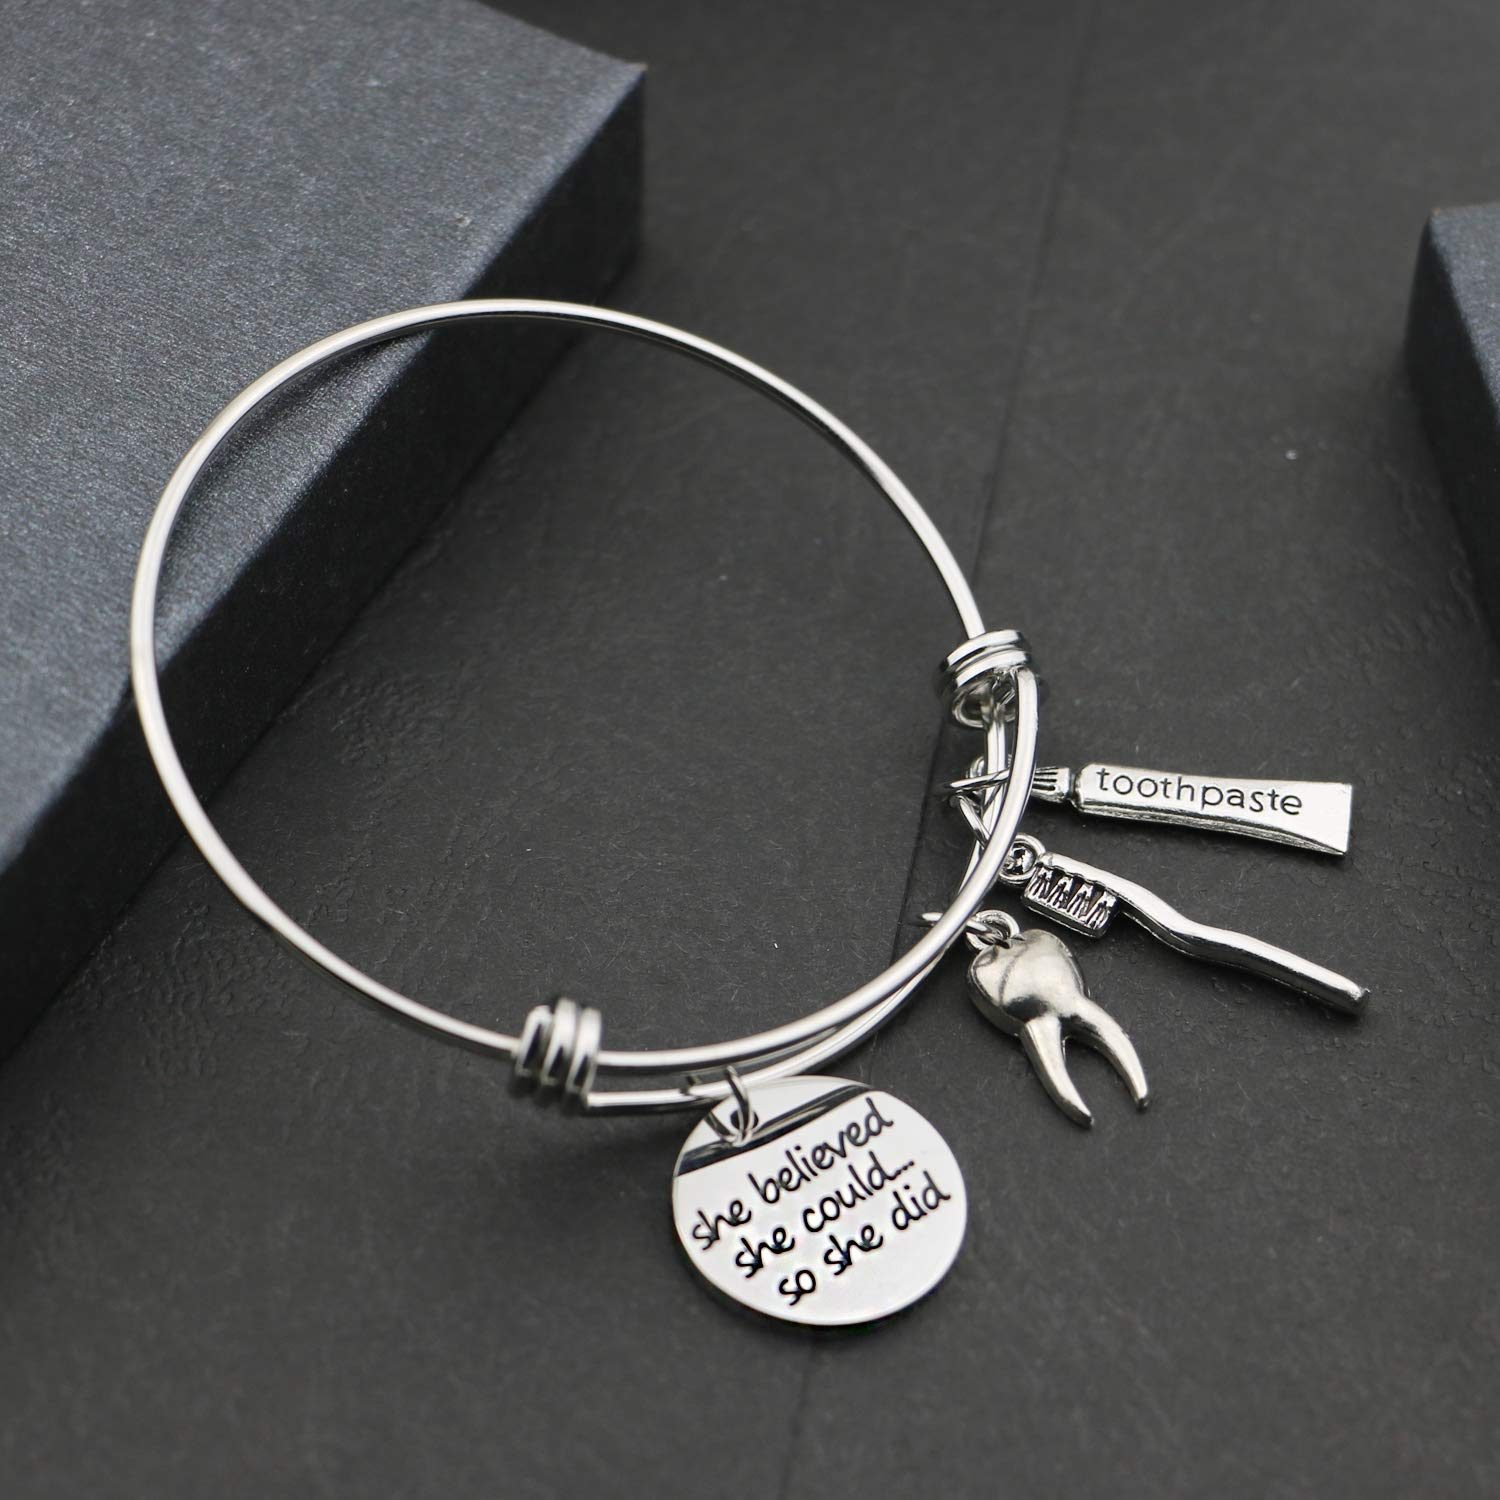 ENSIANTH Dental Hygienist Gifts She Believed She Could So She Did Keychain Dentist Jewelry Graduation Gift for DH